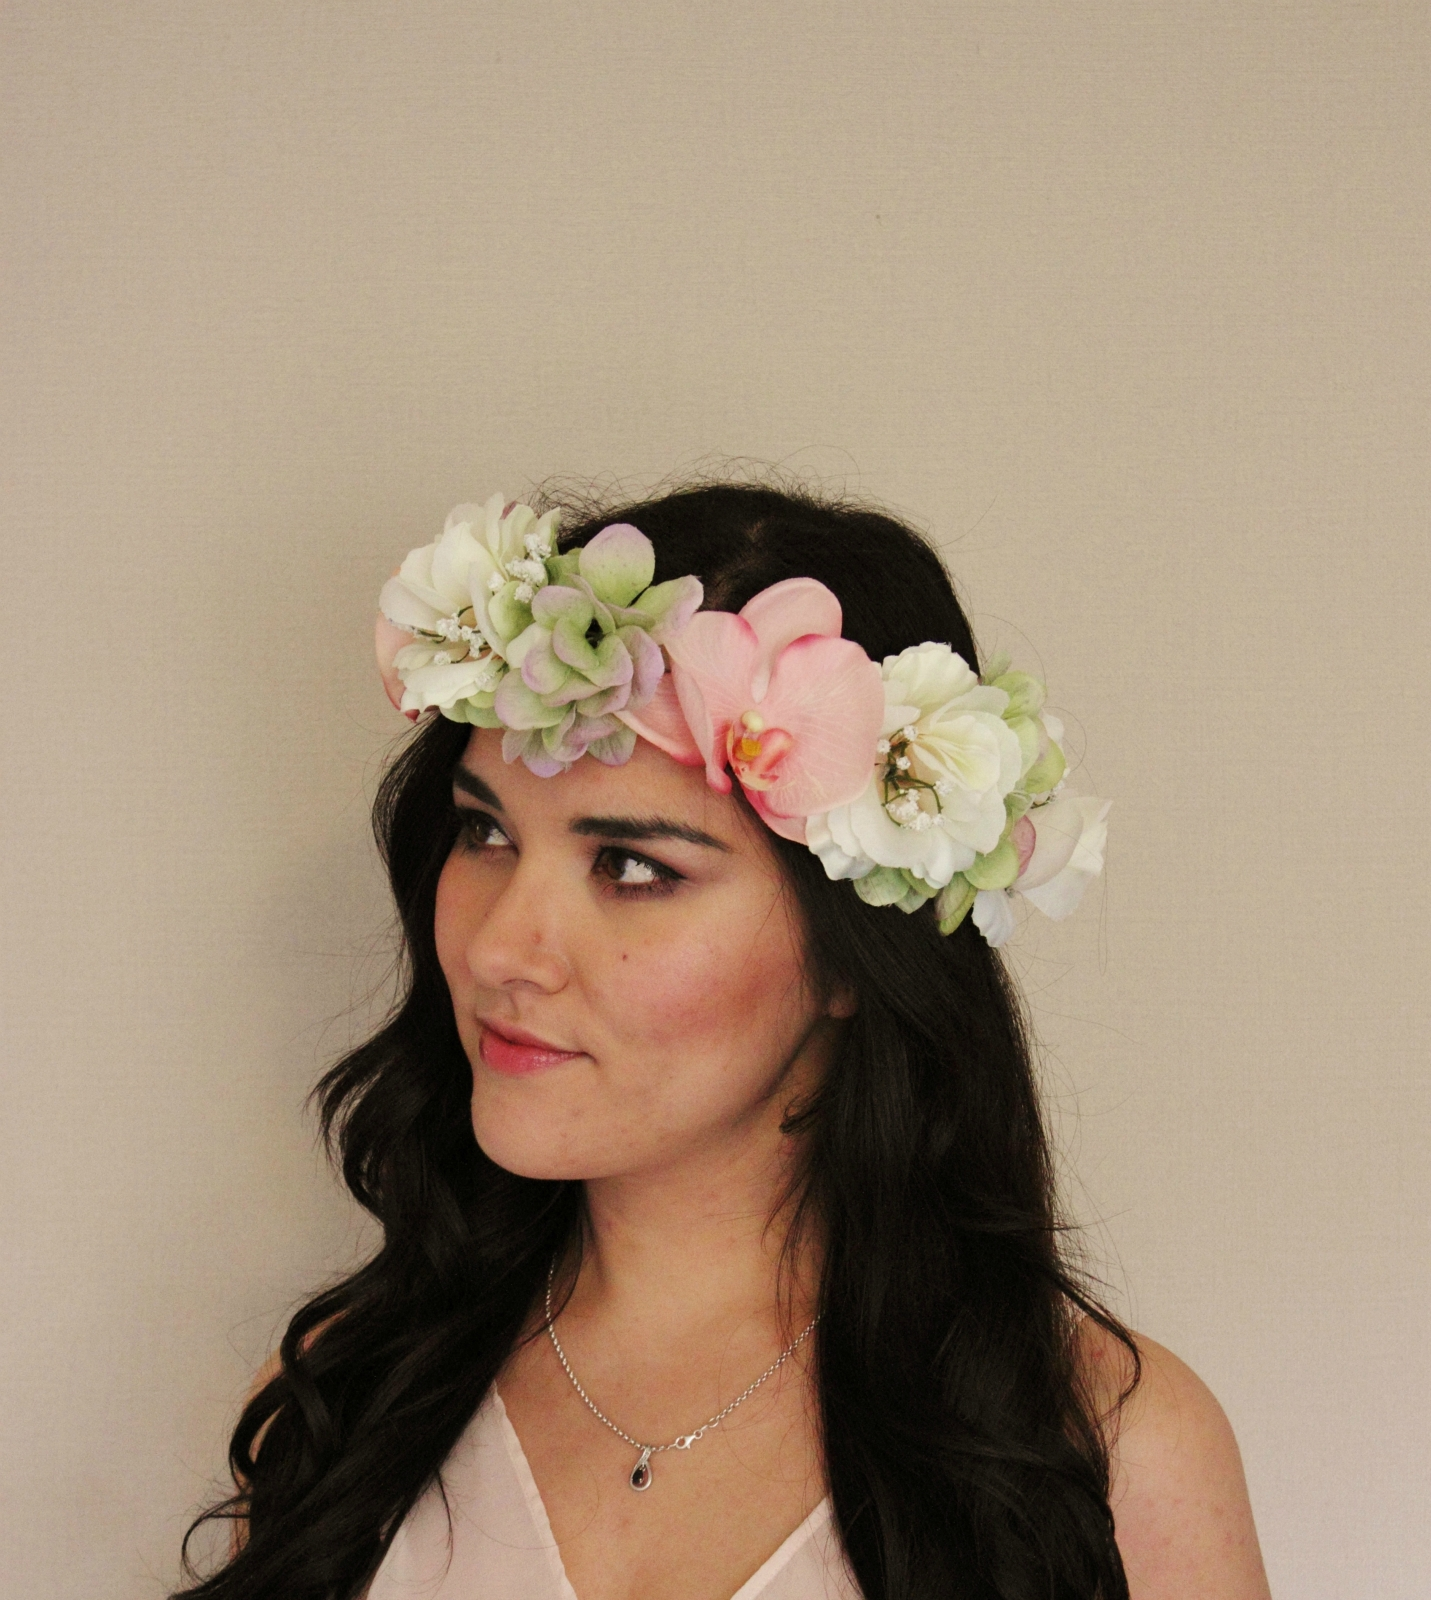 Pink orchid green hydrangea white rose floral crown floral pink orchid green hydrangea white rose floral crown floral headband flower crown floral wreath wreath wedding bridal festival felt izmirmasajfo